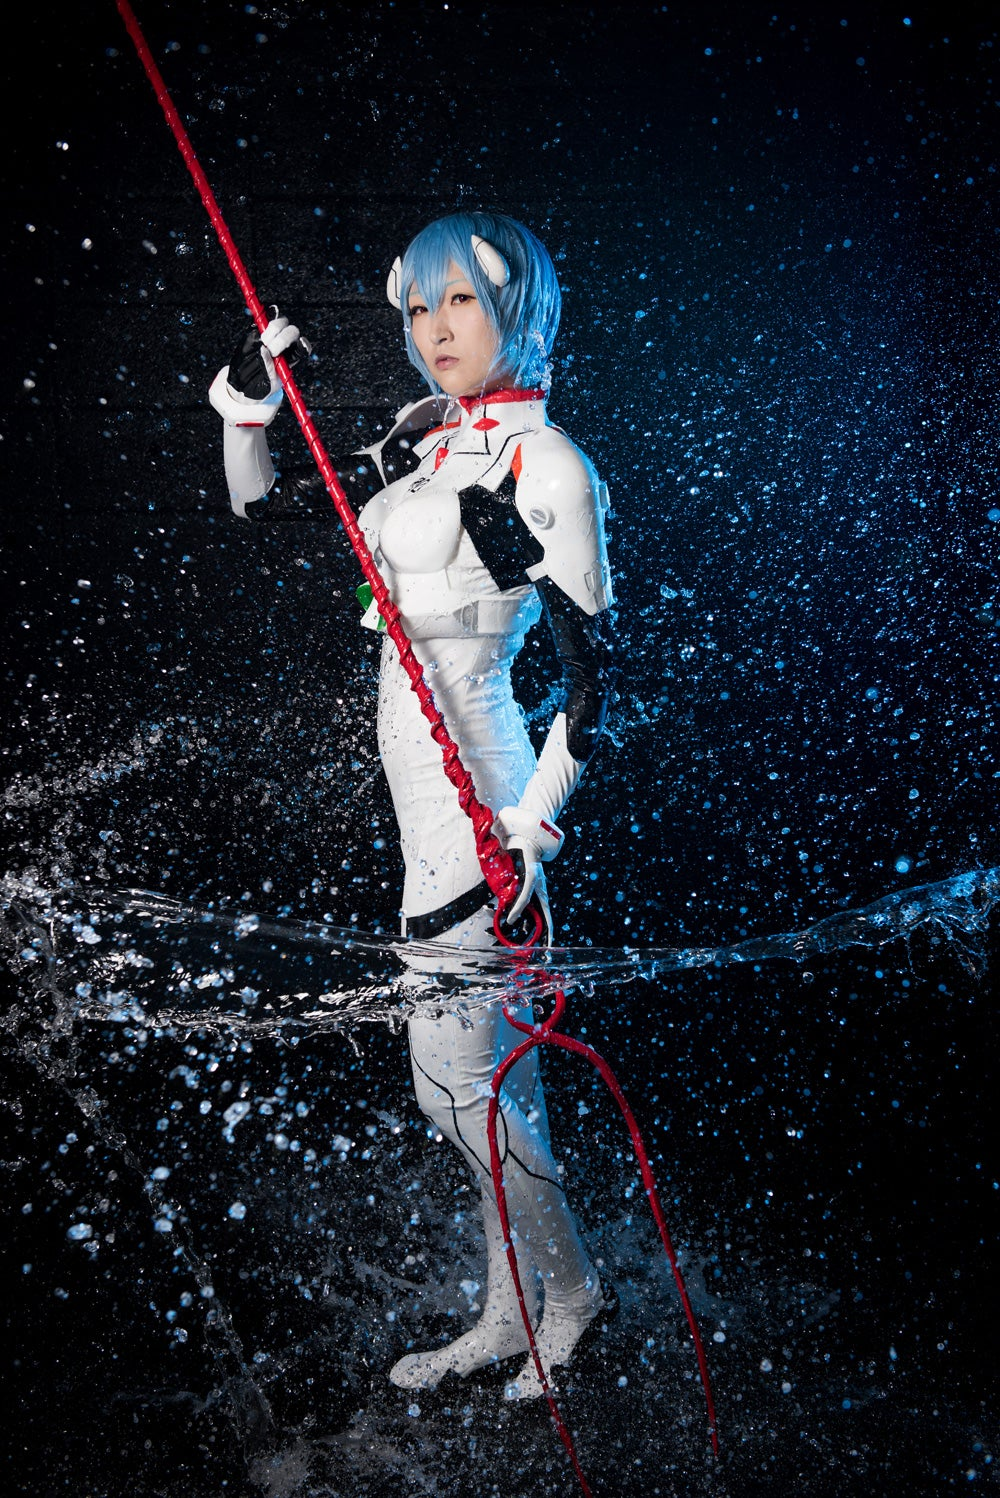 Real Water Makes Cosplay Wetter, I Mean Better